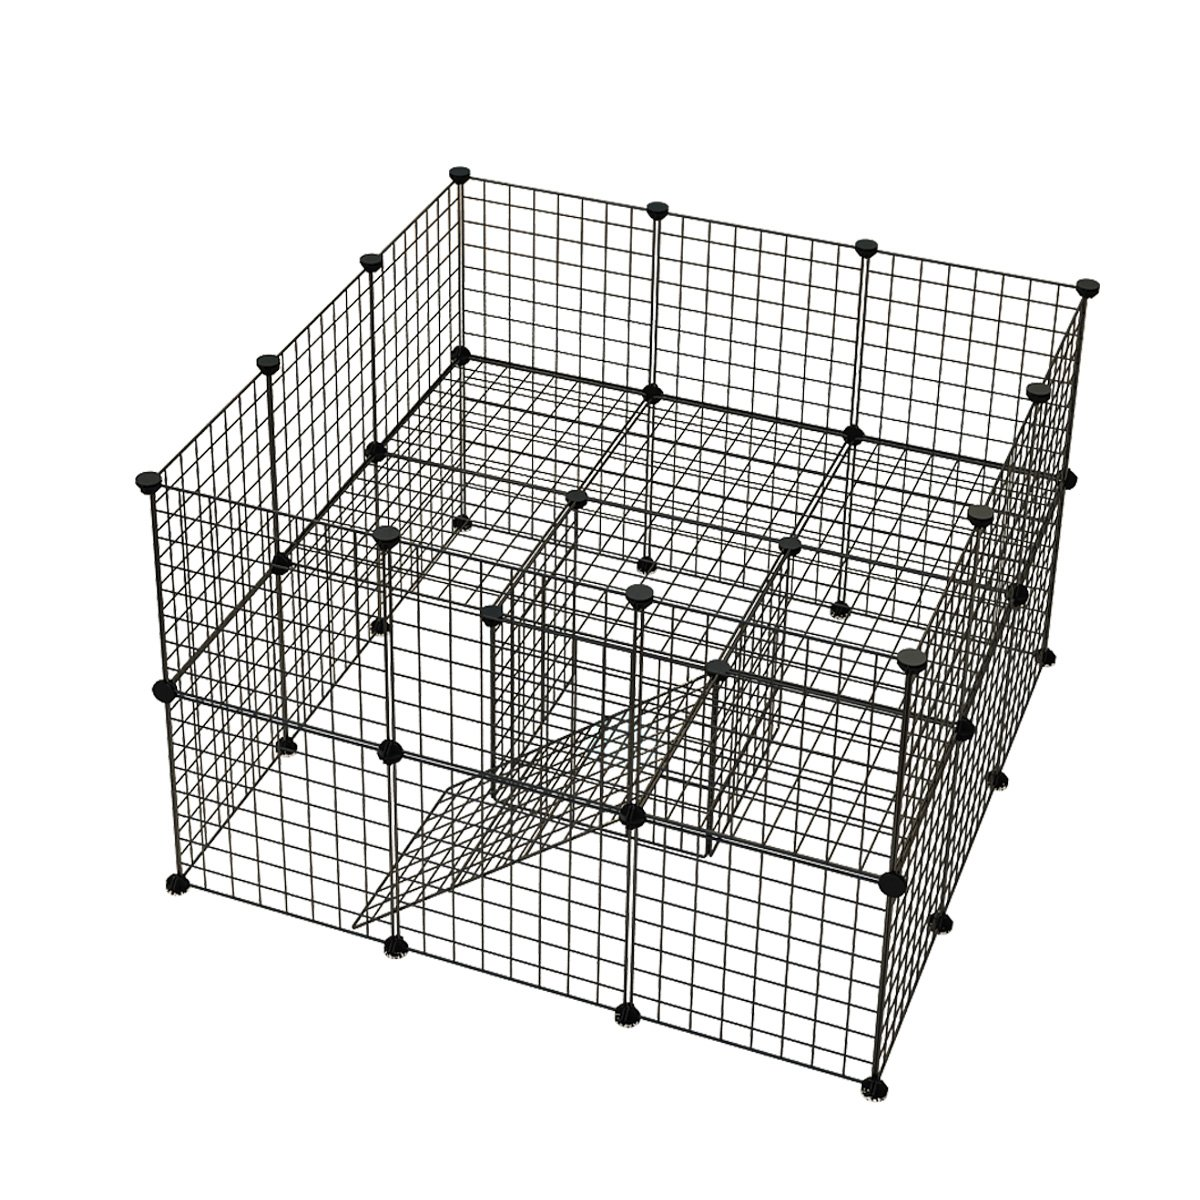 JYYG Small Pet Pen Bunny Cage Dogs Playpen Indoor Out Door Animal Fence Puppy Guinea Pigs, Dwarf Rabbits PET-F (36 Panels, Black)